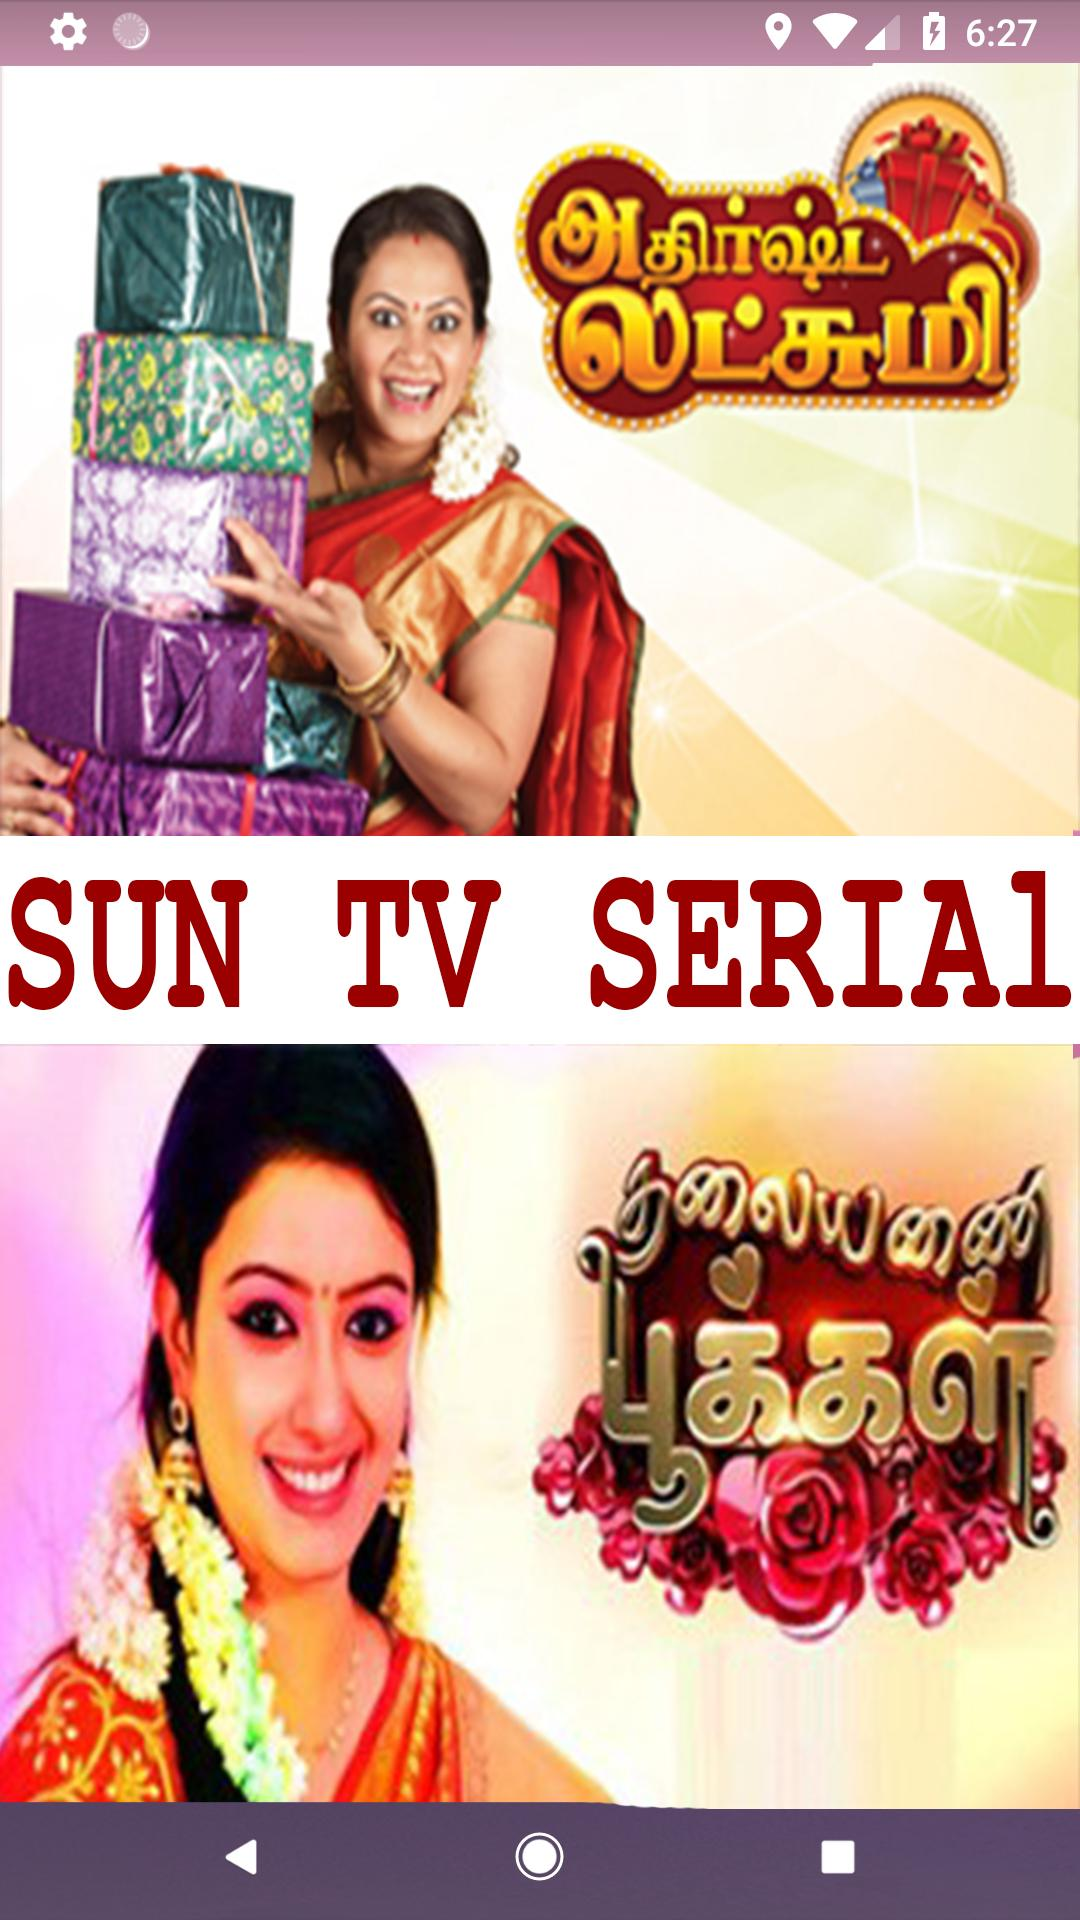 Sun TV HD for Android - APK Download